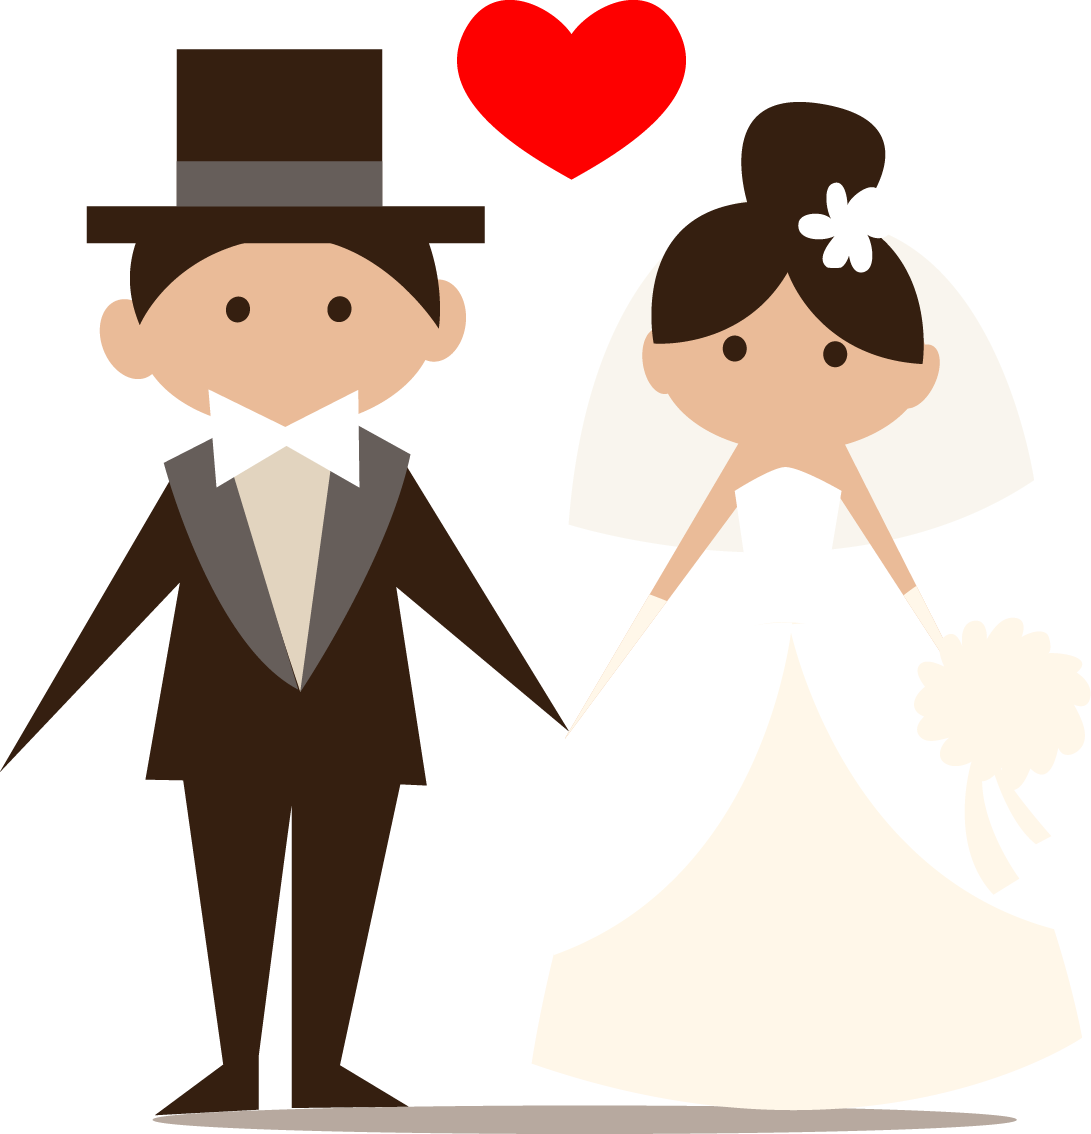 Wedding clip art png. Transparent free images only